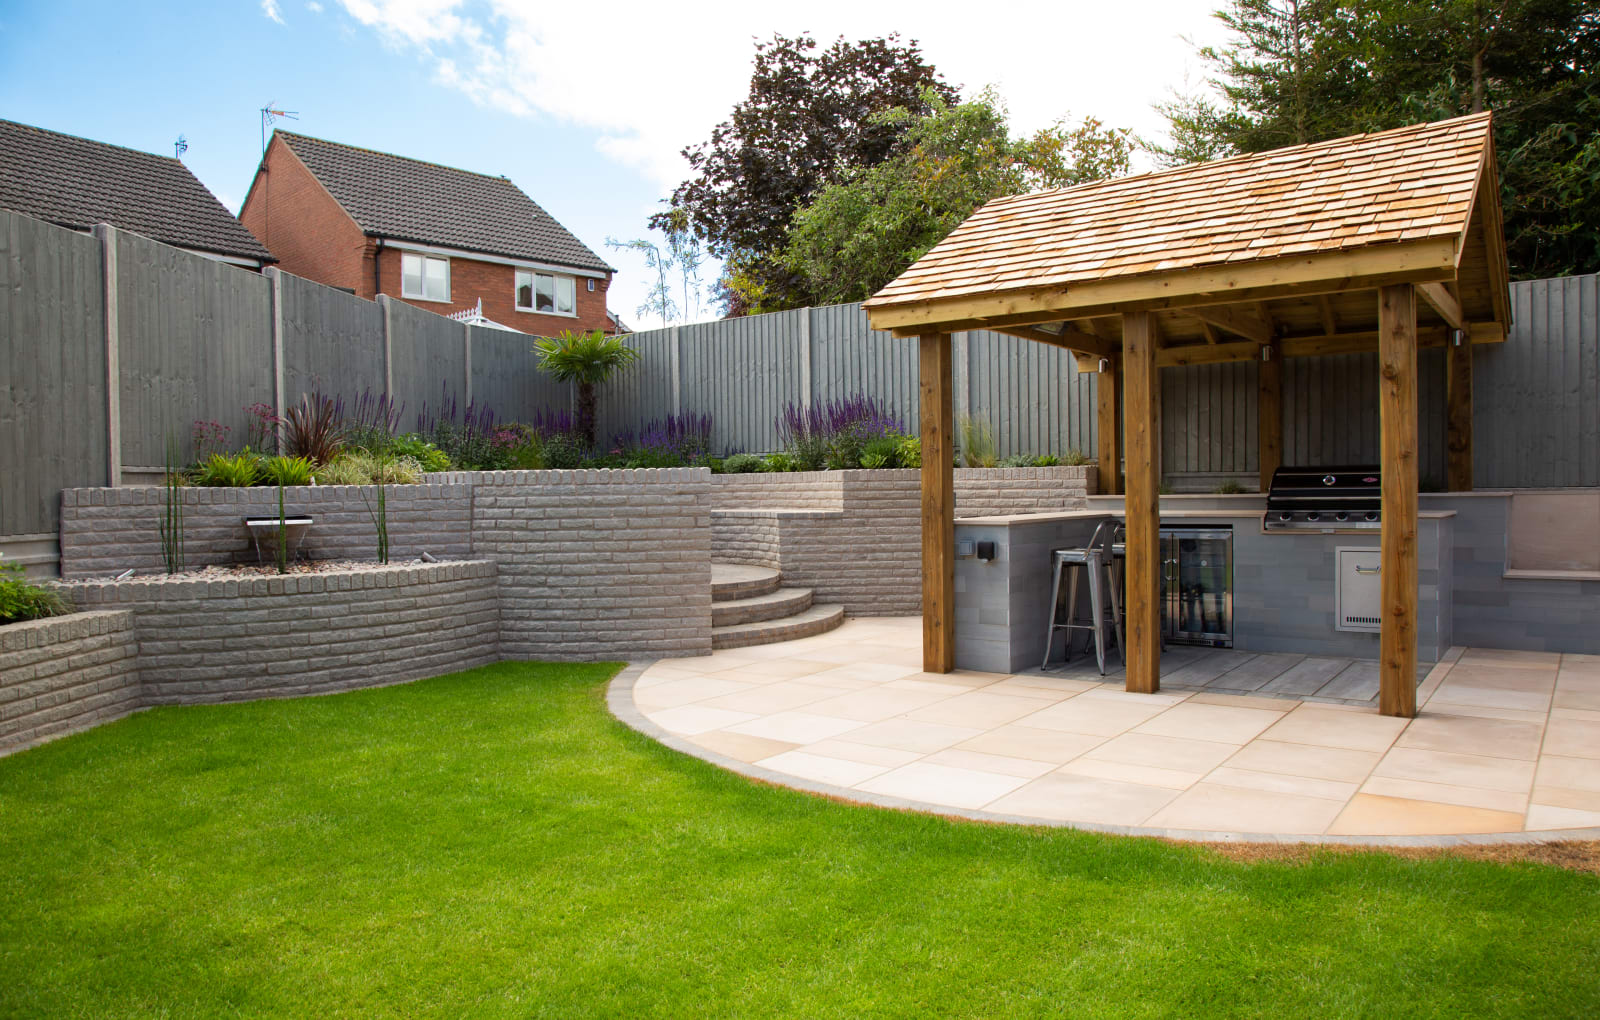 Marshalite Walling, Sawn Versuro paving and Drivesett Tegula